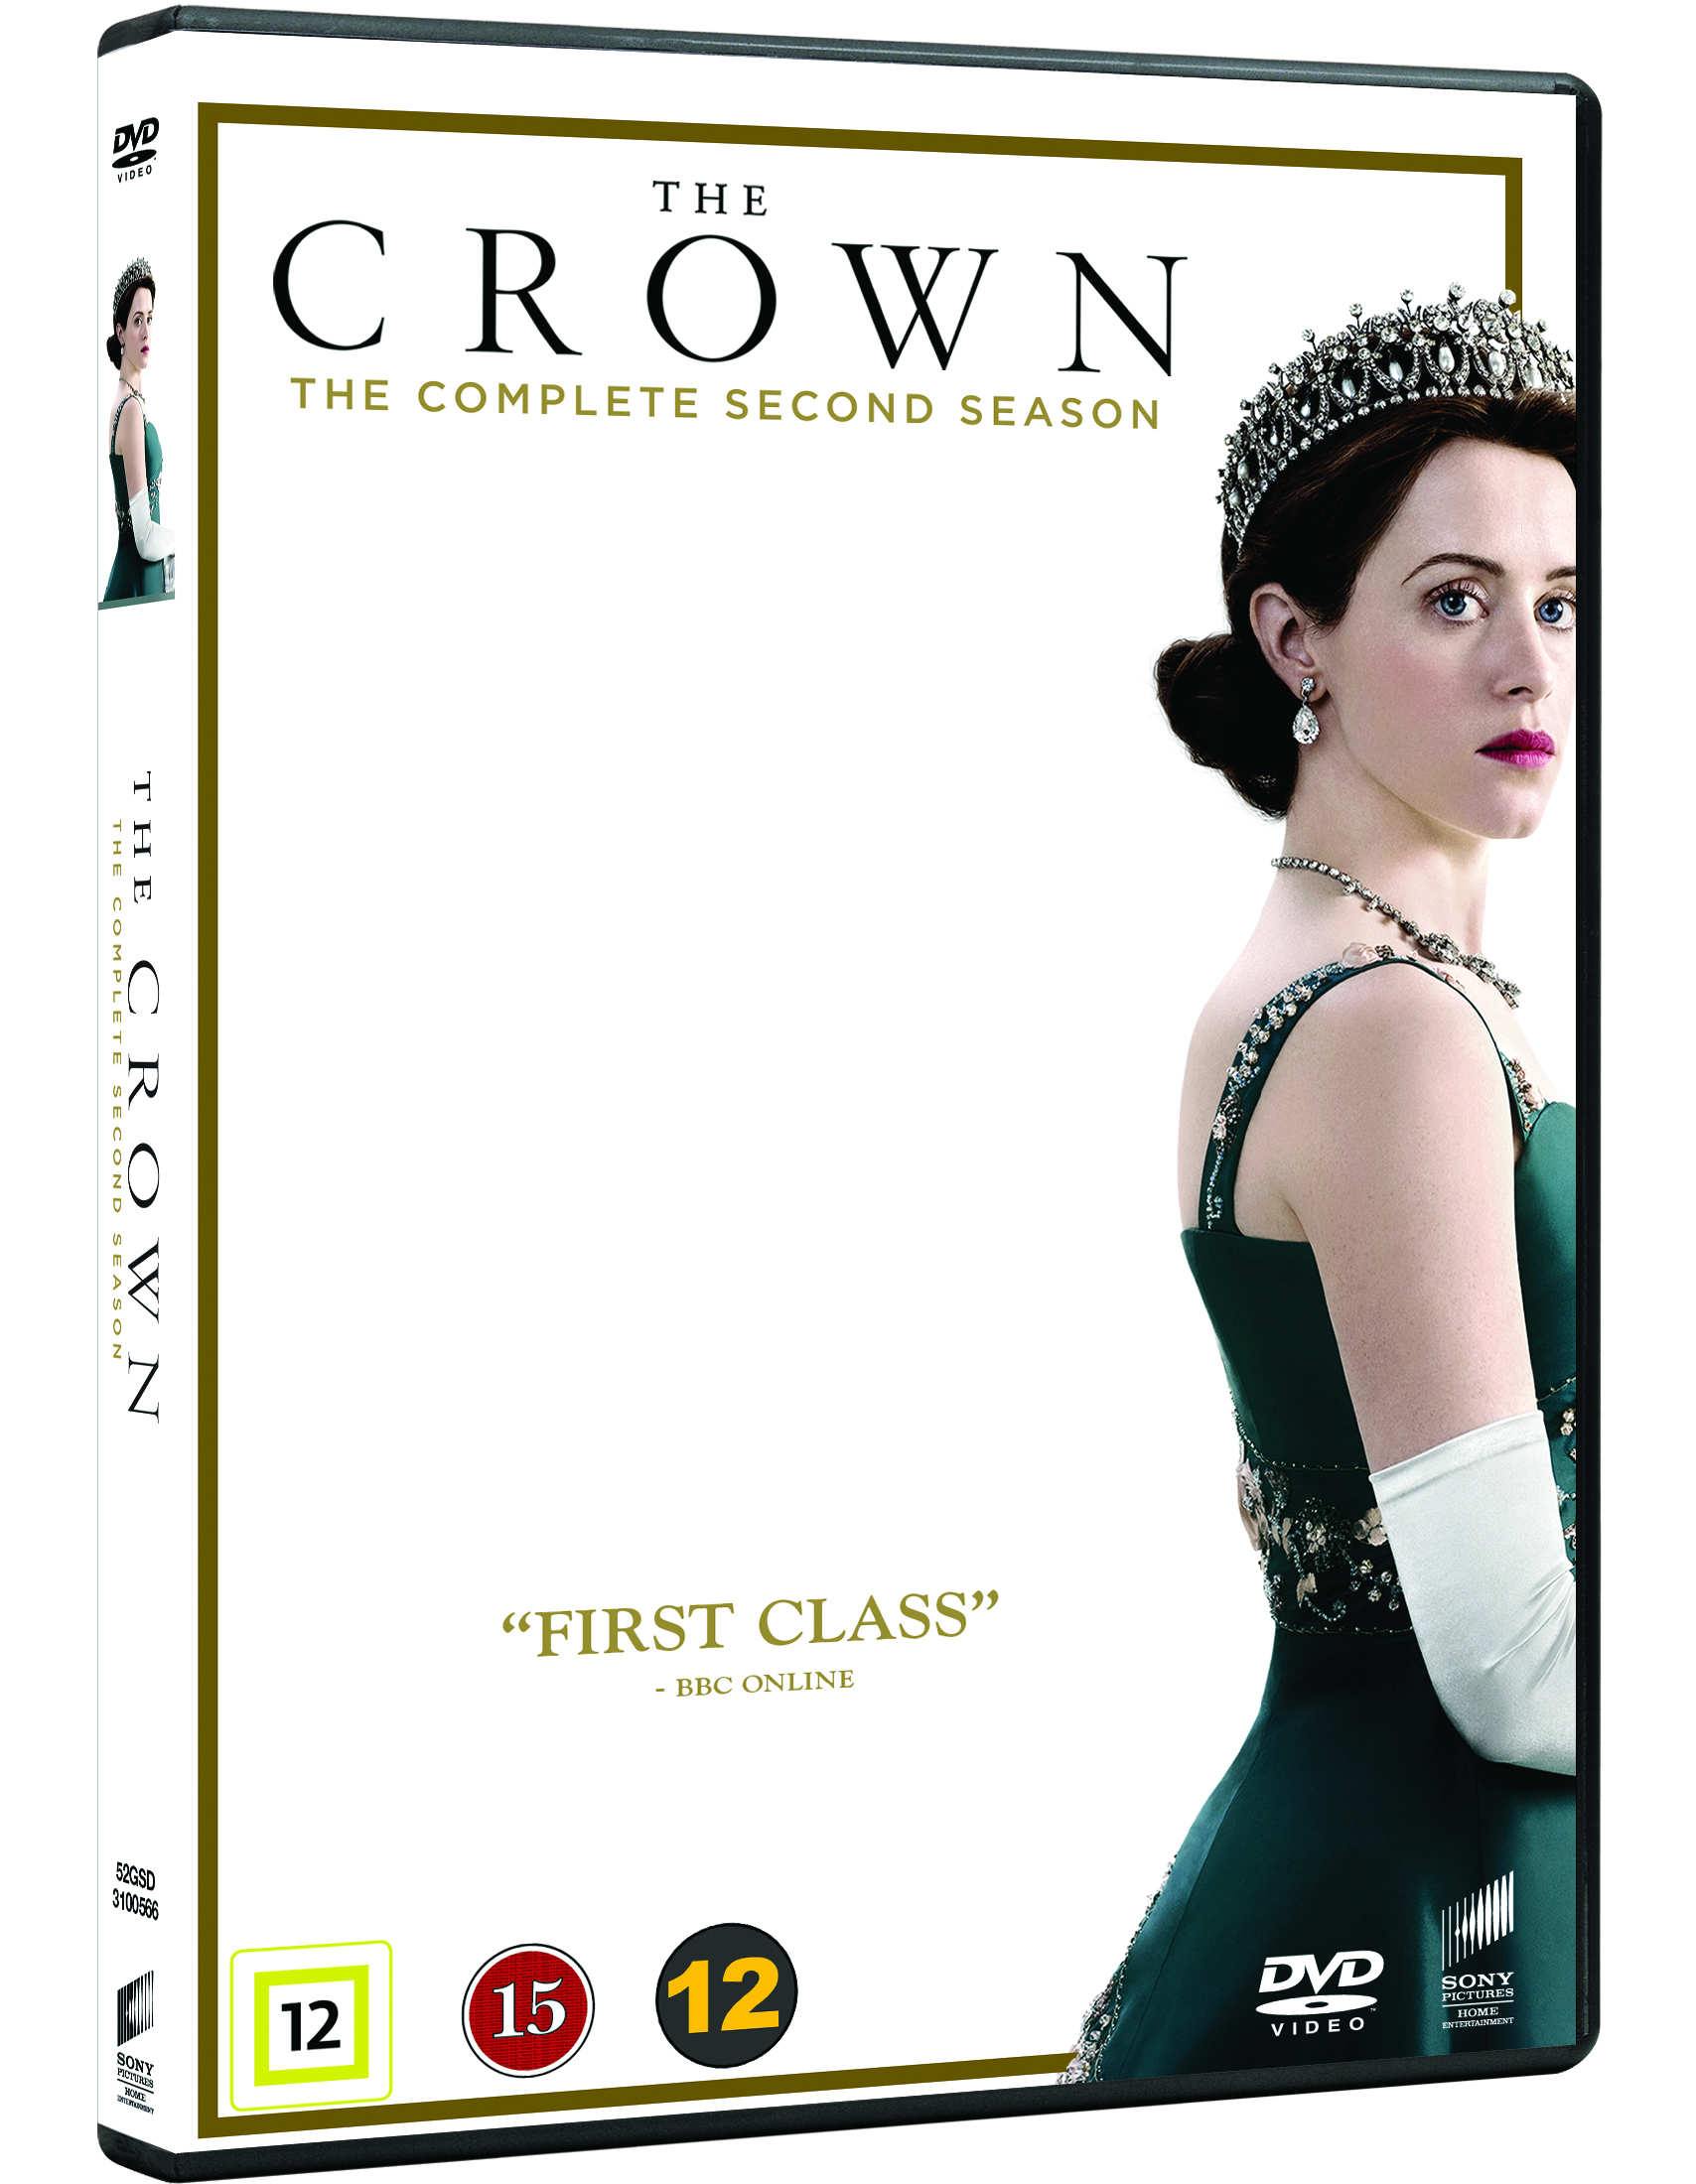 The Crown - Sæson 2 - The Crown - Film -  - 7330031005662 - October 25, 2018